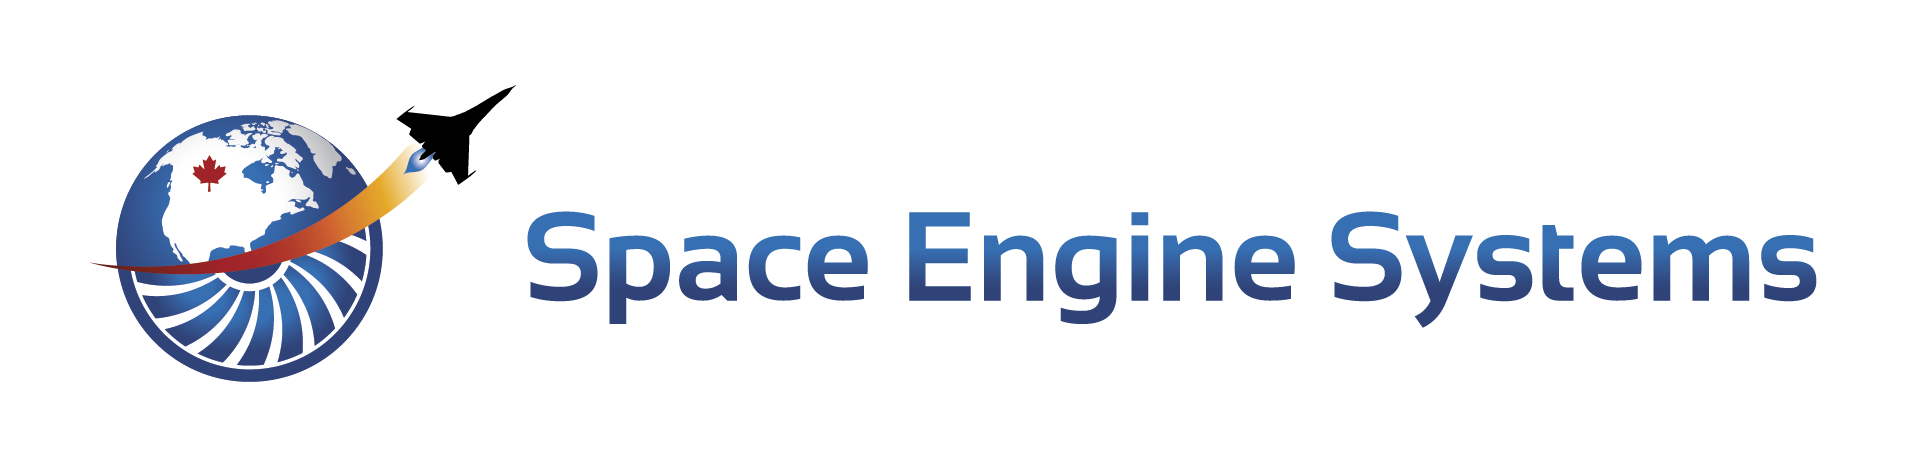 Space Engine Systems logo